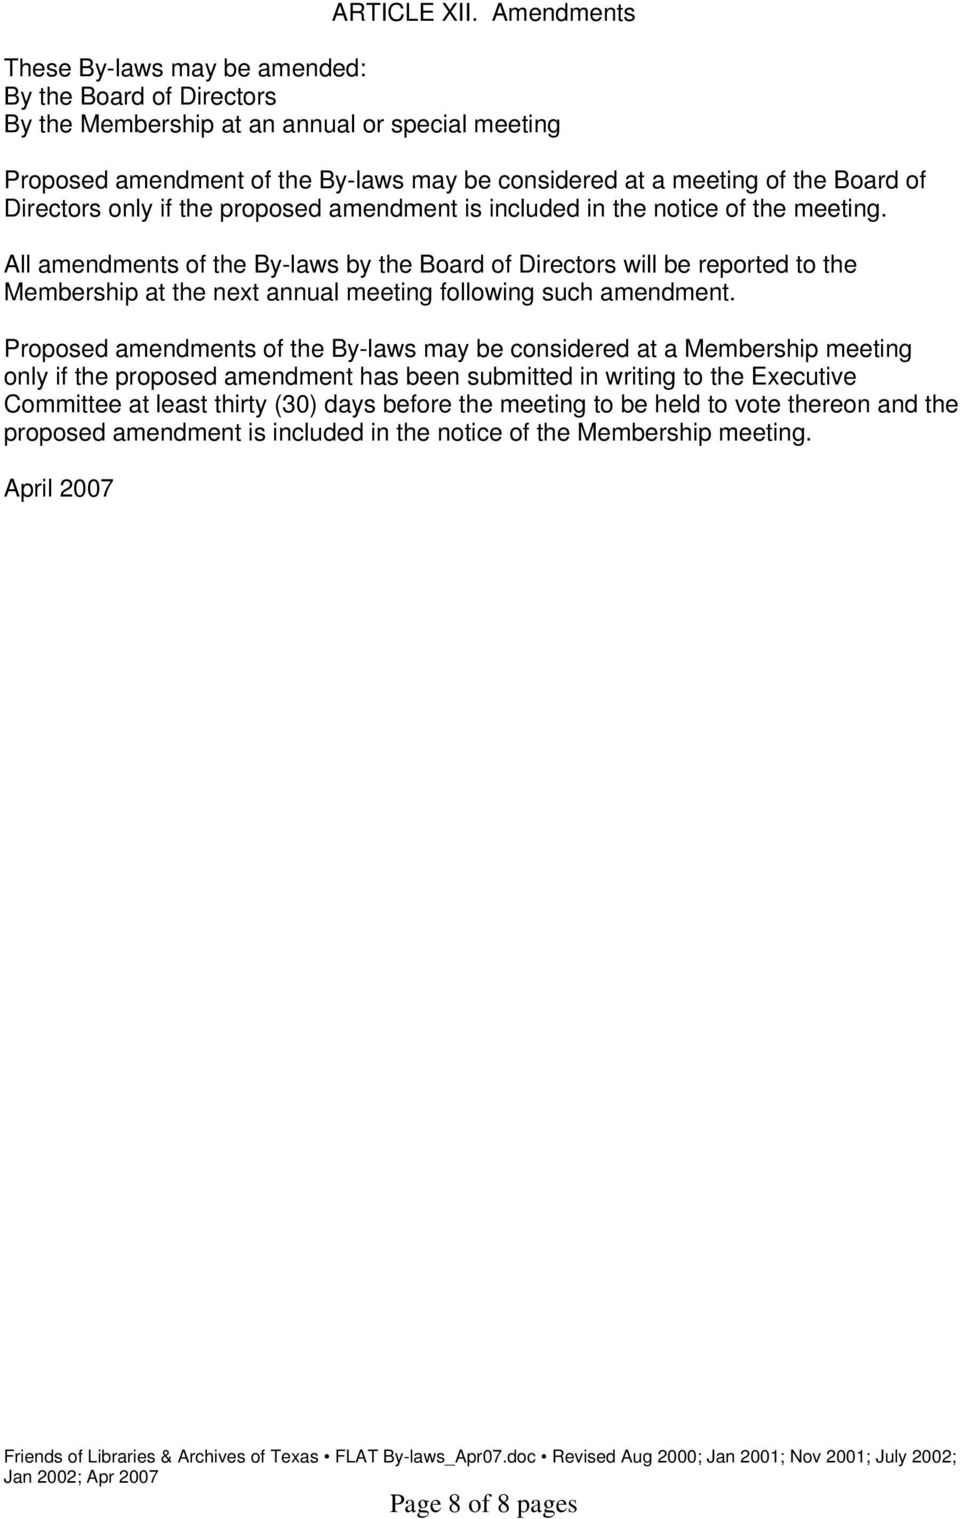 of Directors only if the proposed amendment is included in the notice of the meeting.